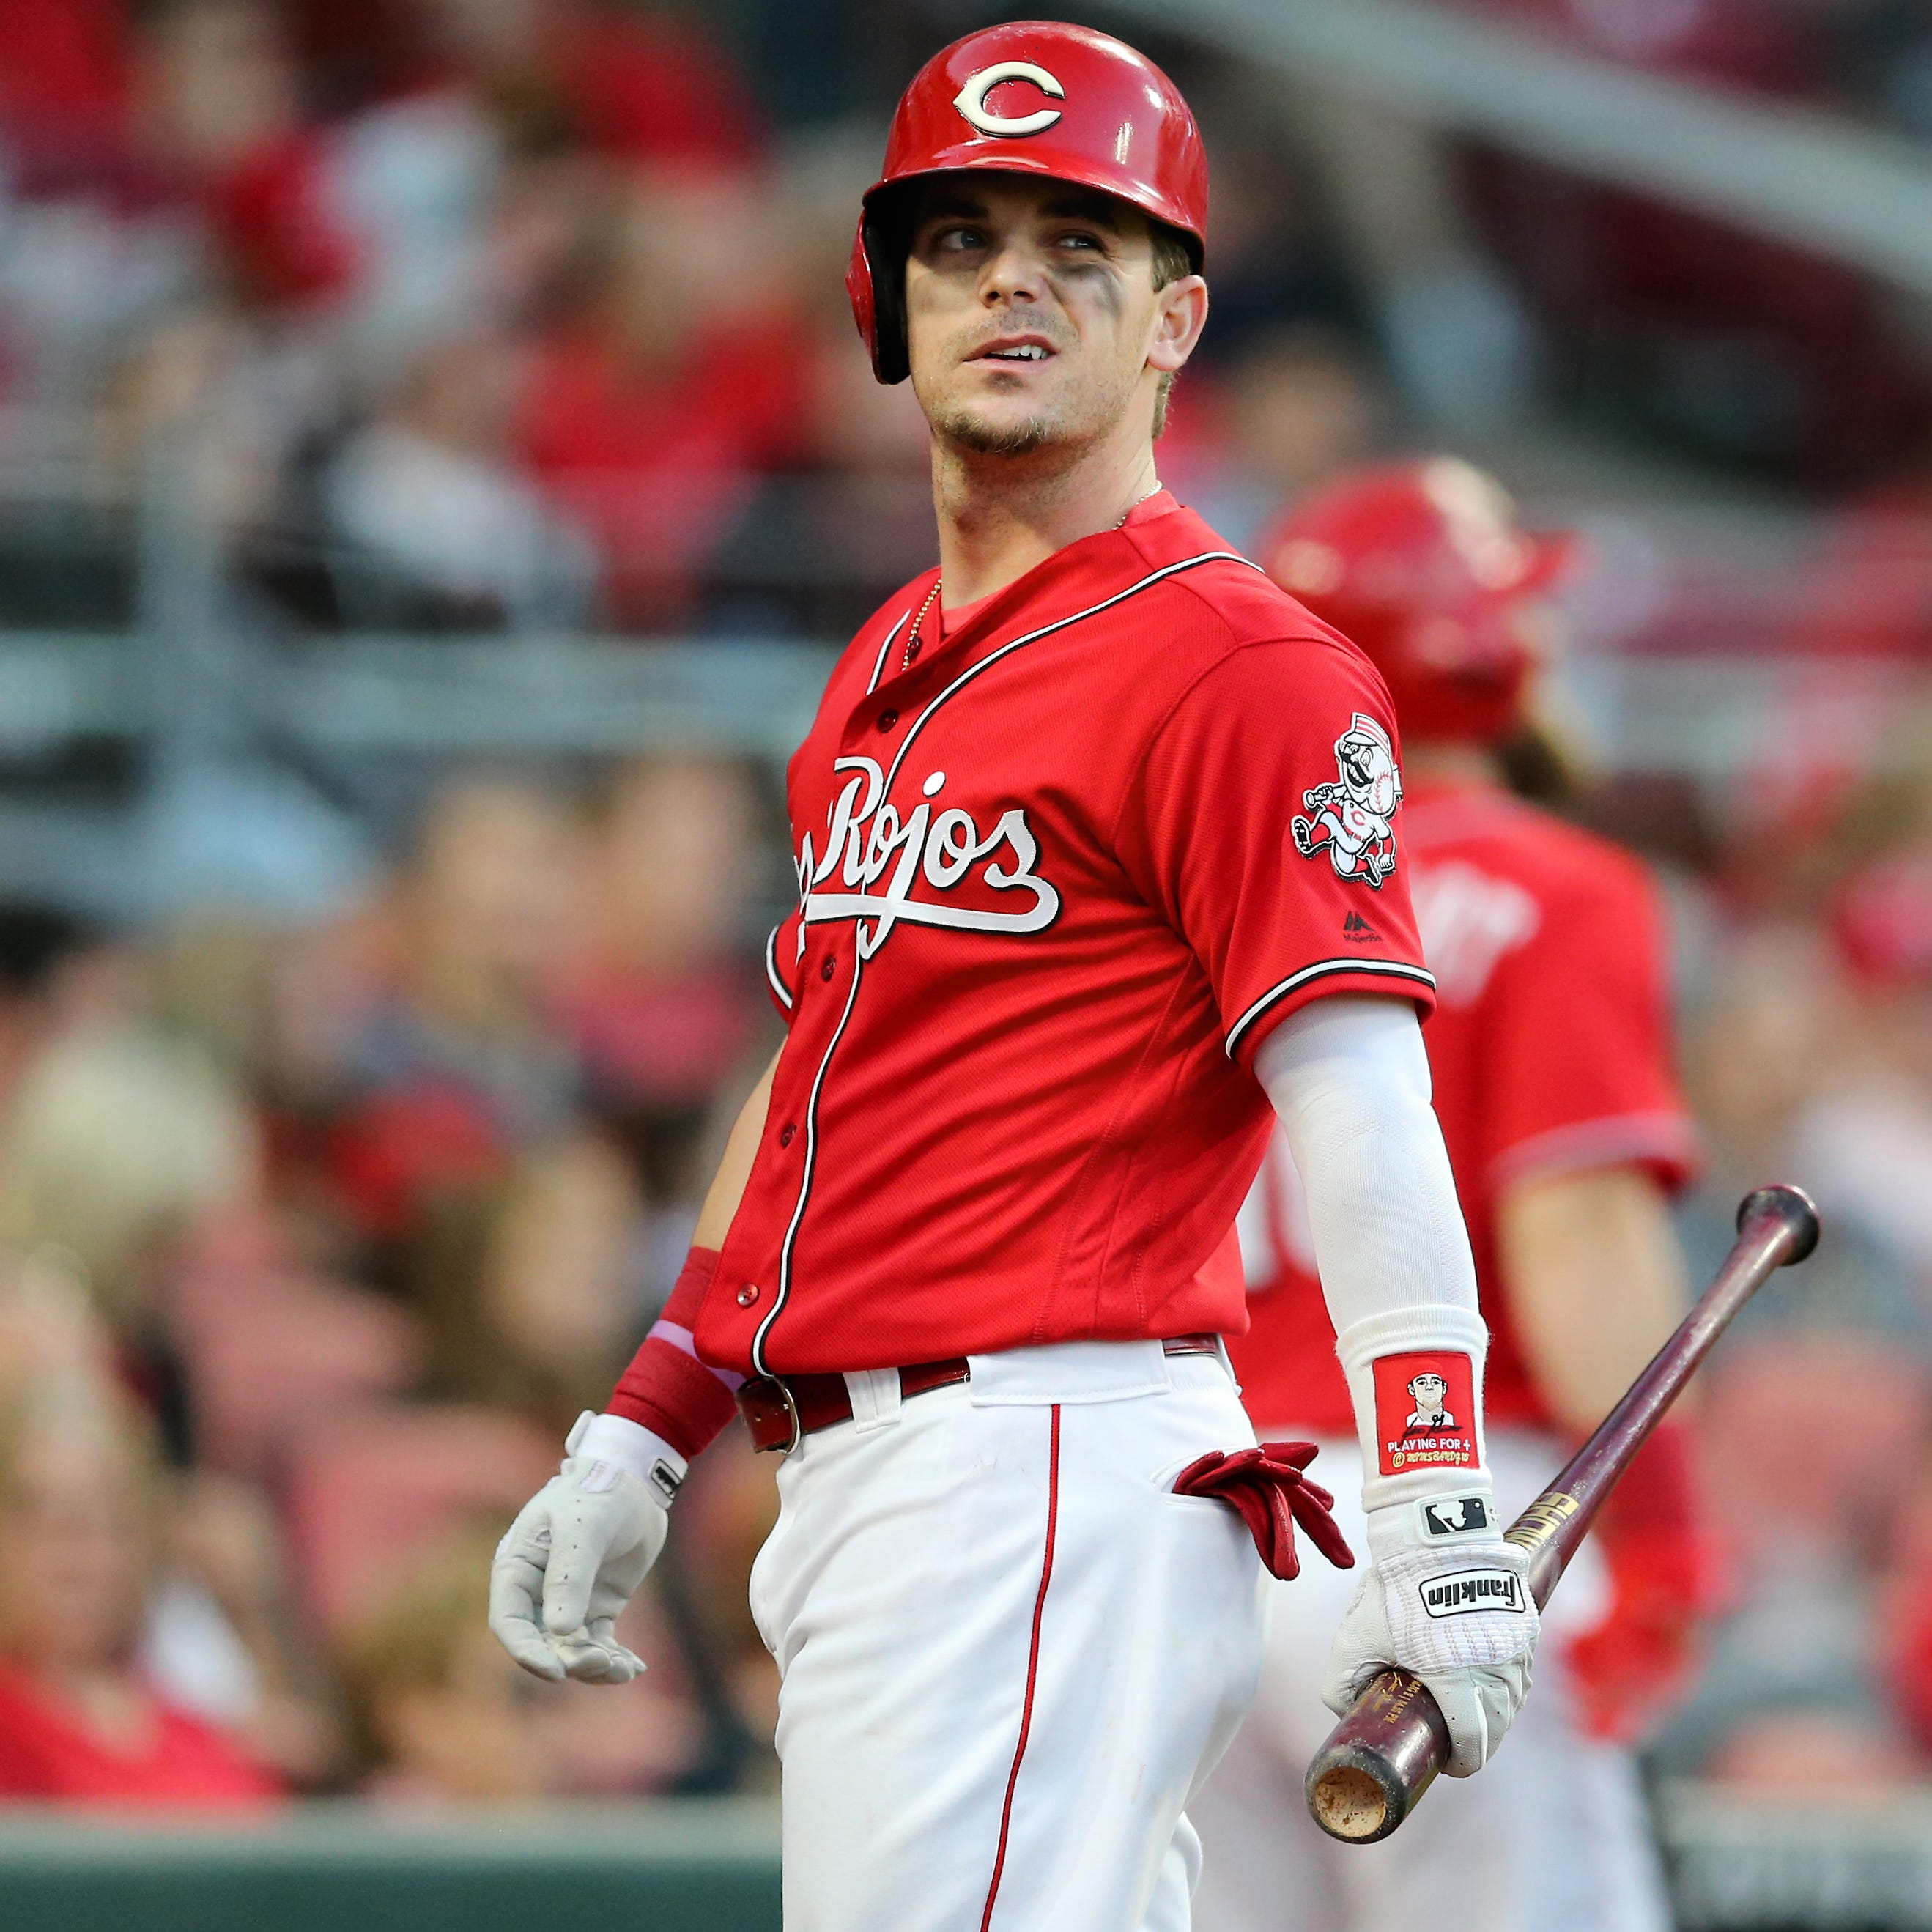 Cincinnati Reds reach 1-year deals with 7 players; may go to arbitration hearing with Wood